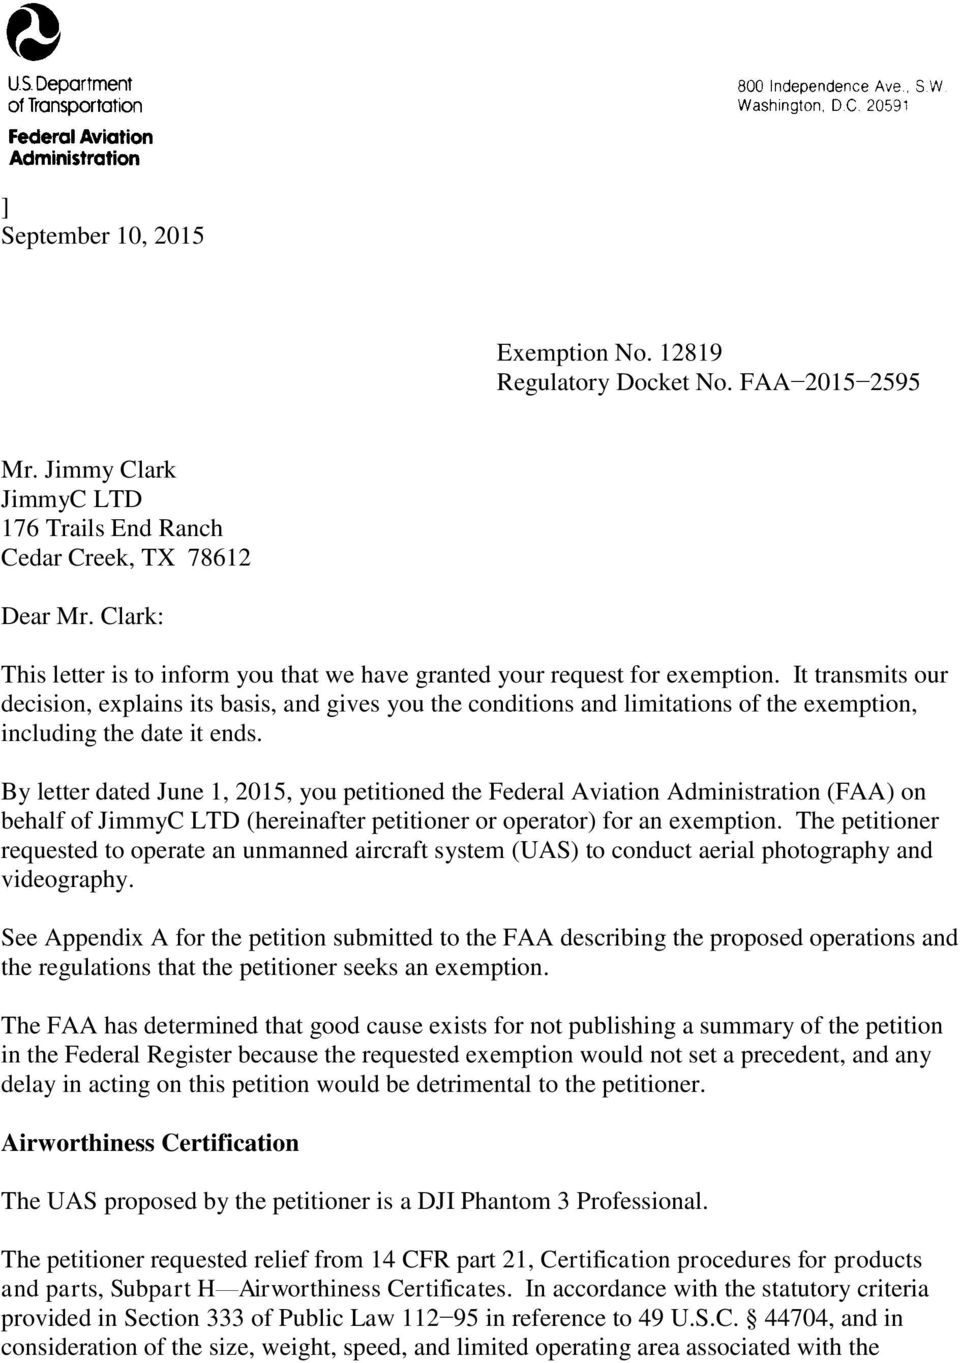 See Appendix A for the petition submitted to the FAA